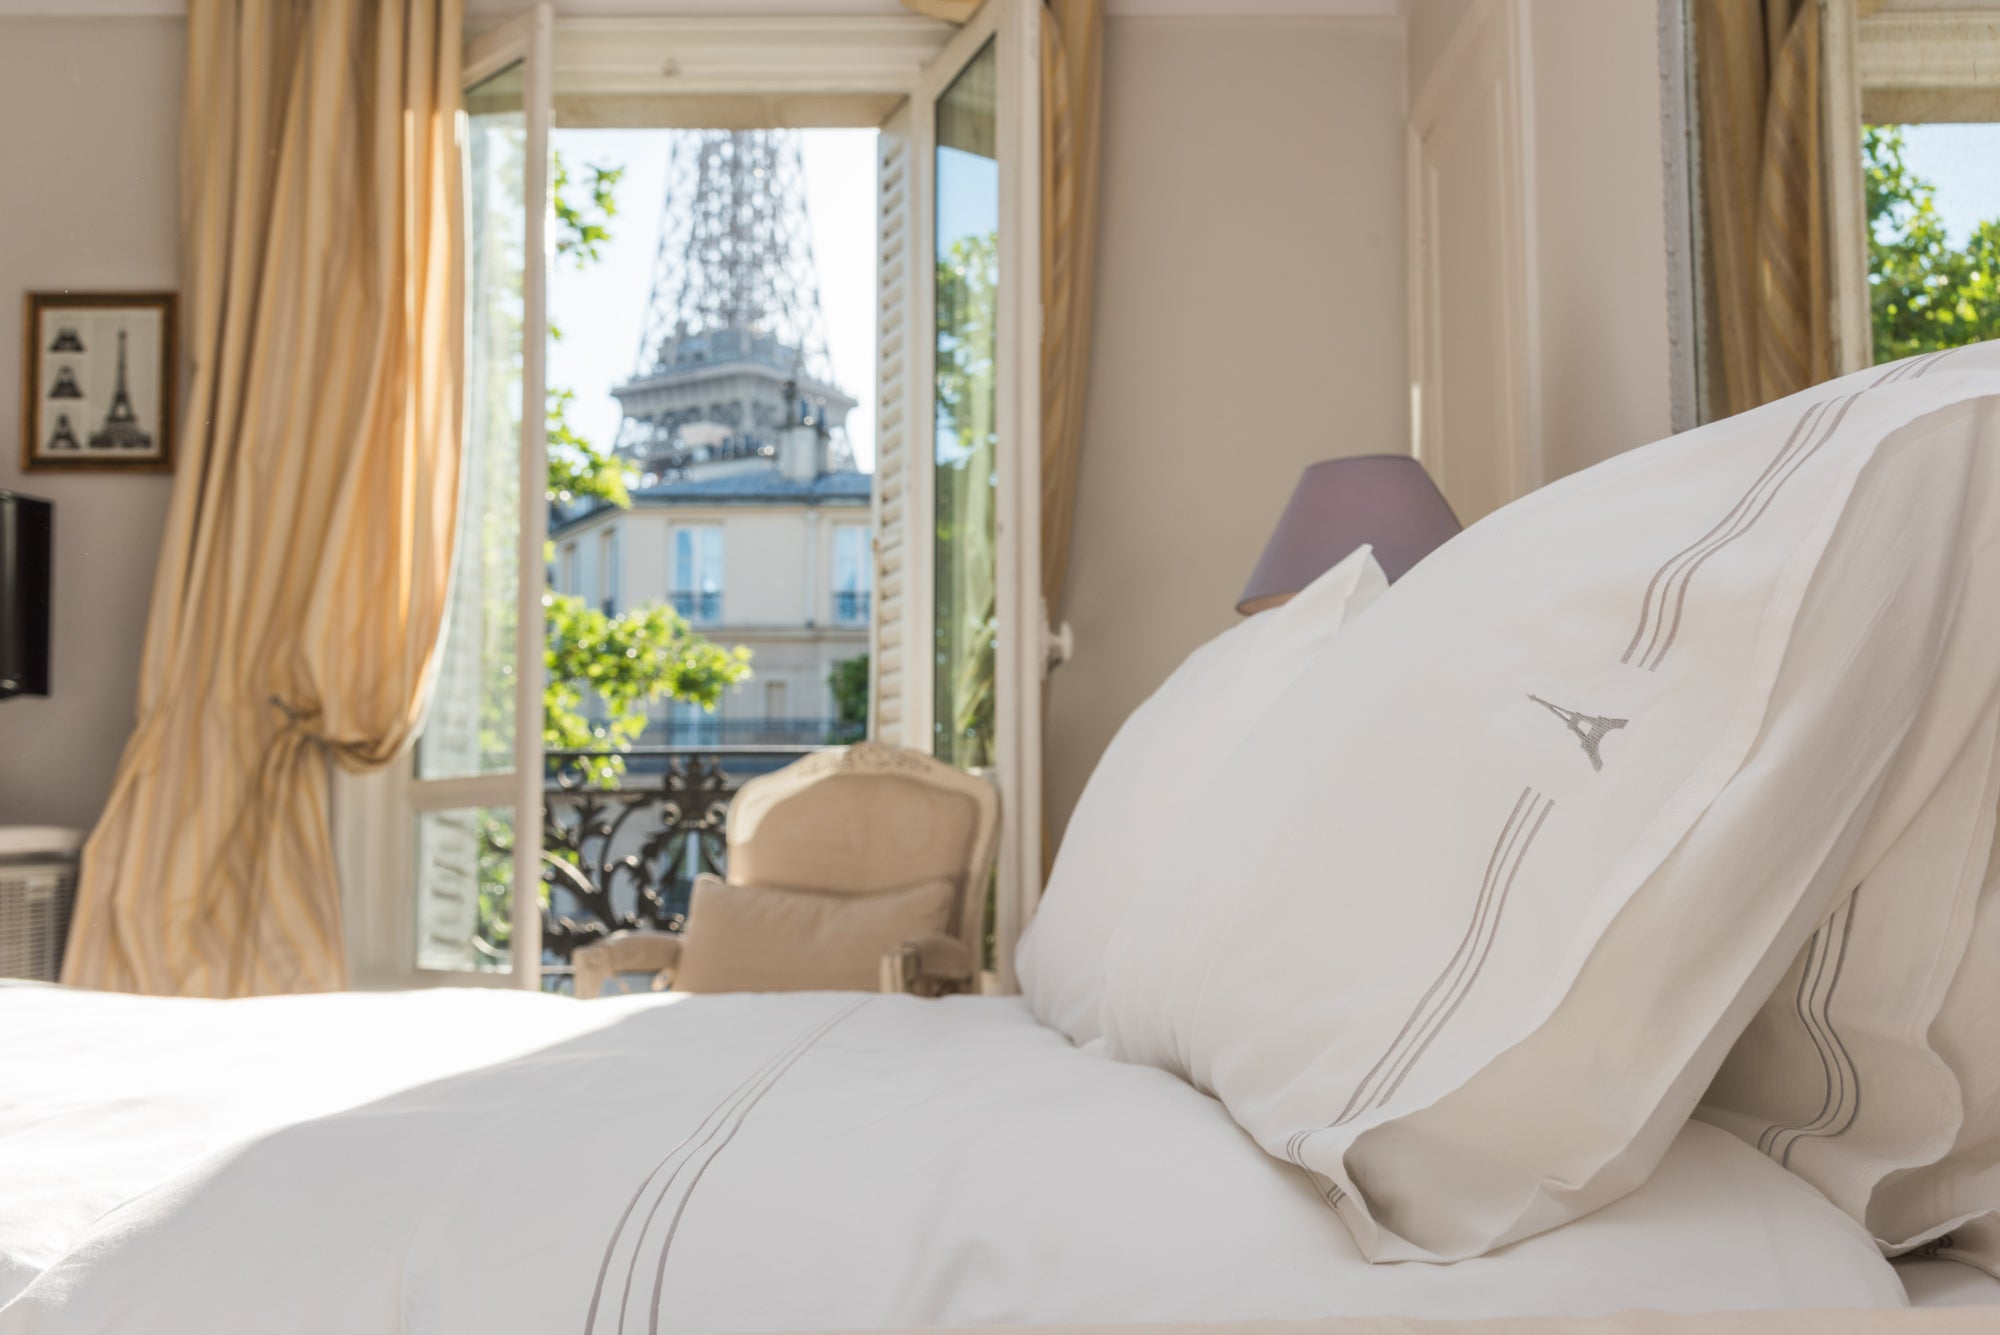 Eiffel Tower Luxury King Sheet Set